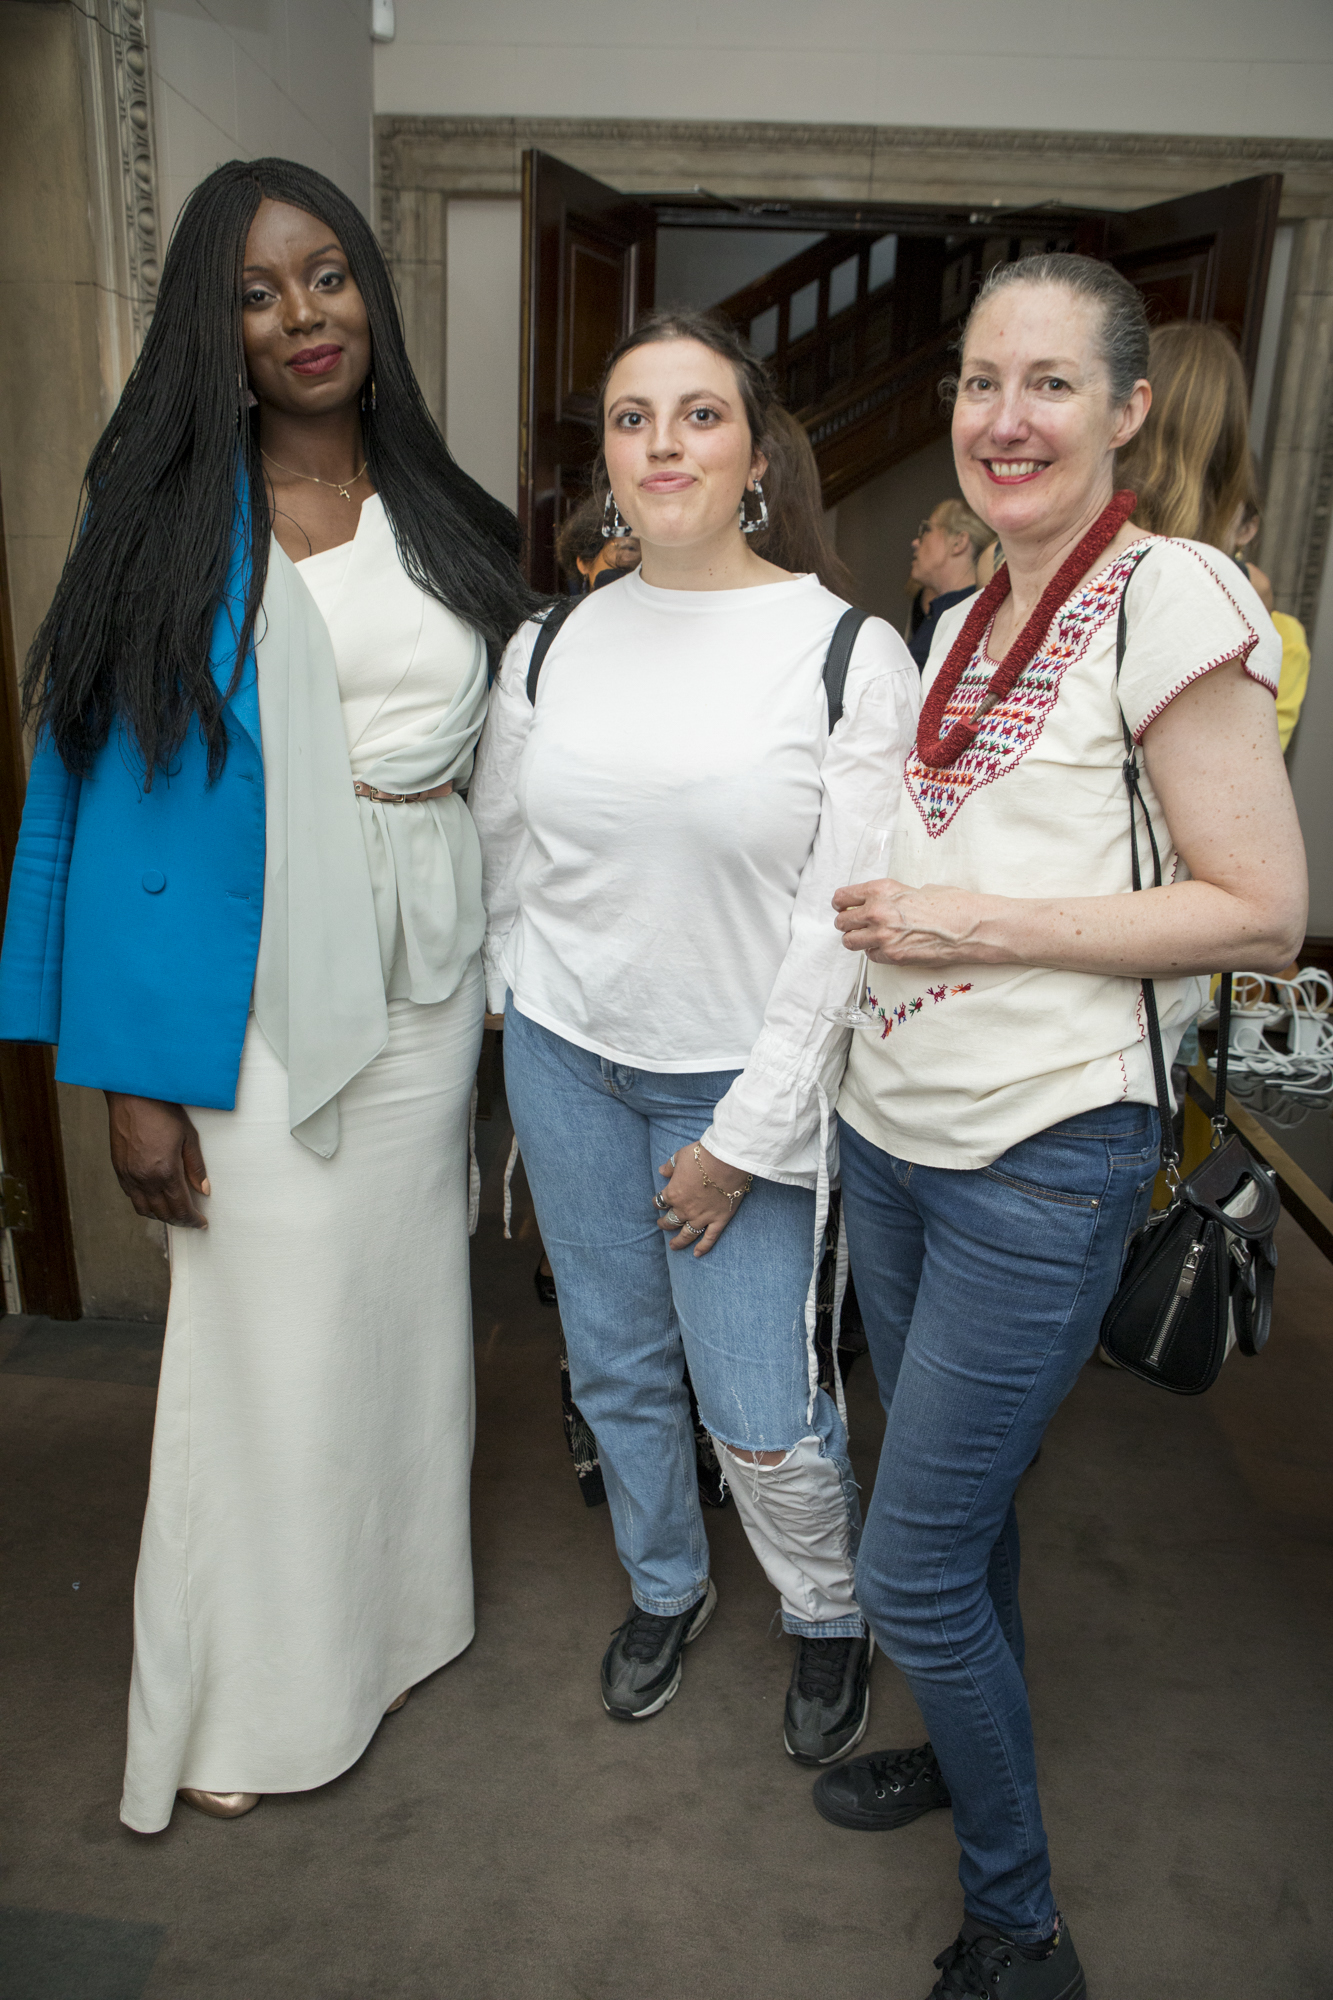 Jennifer Ewah - Founder, Eden Diodati (left); Deborah Milner - Couture Designer (right)